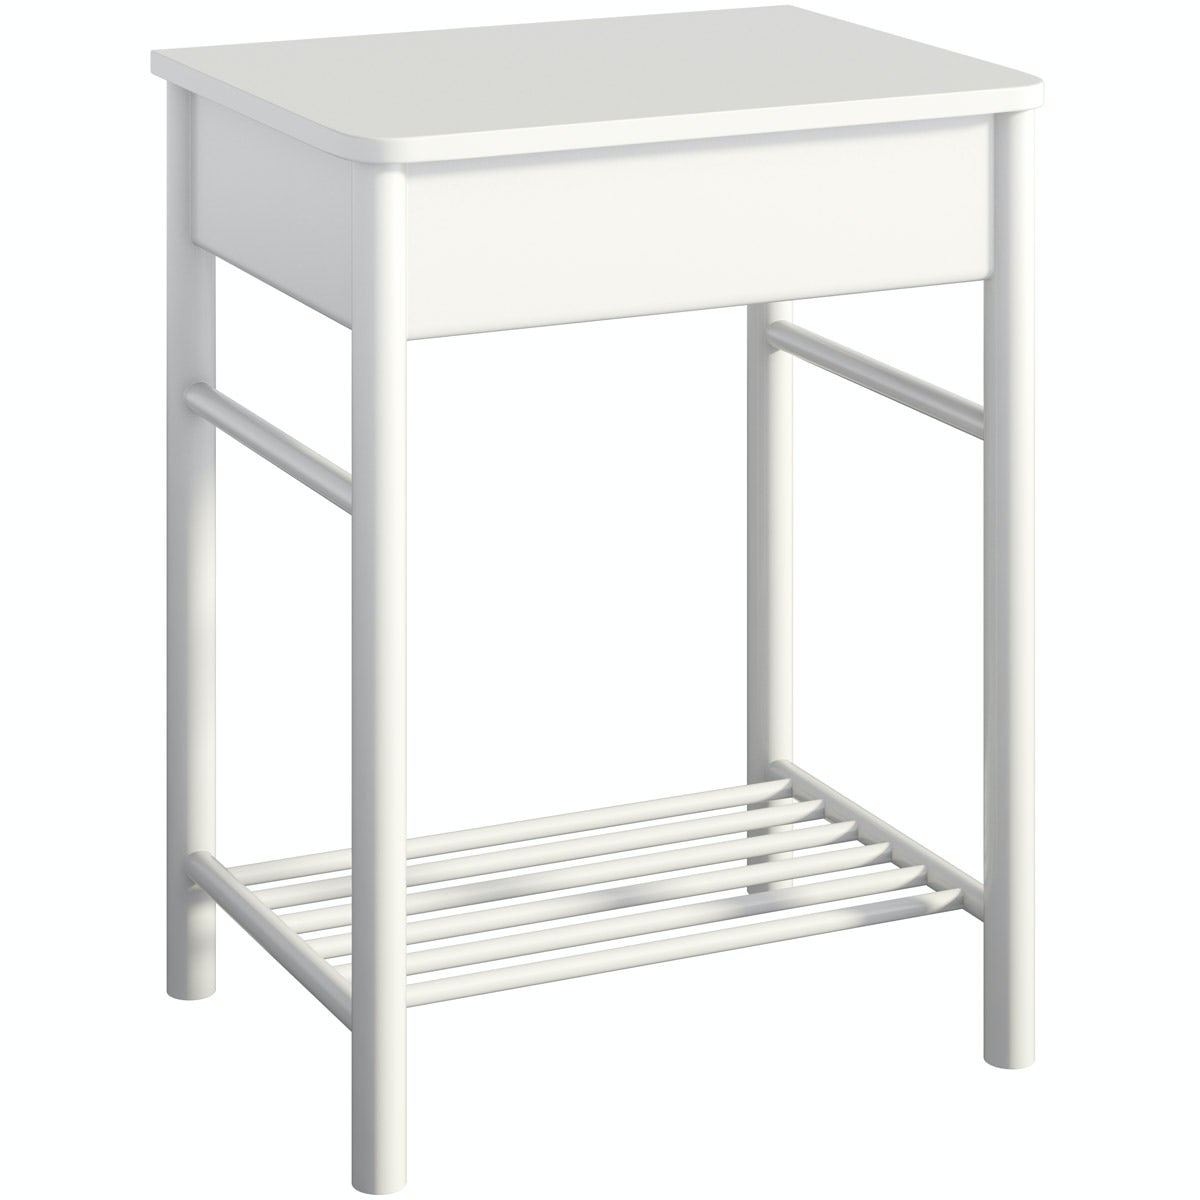 South Bank white washstand with top